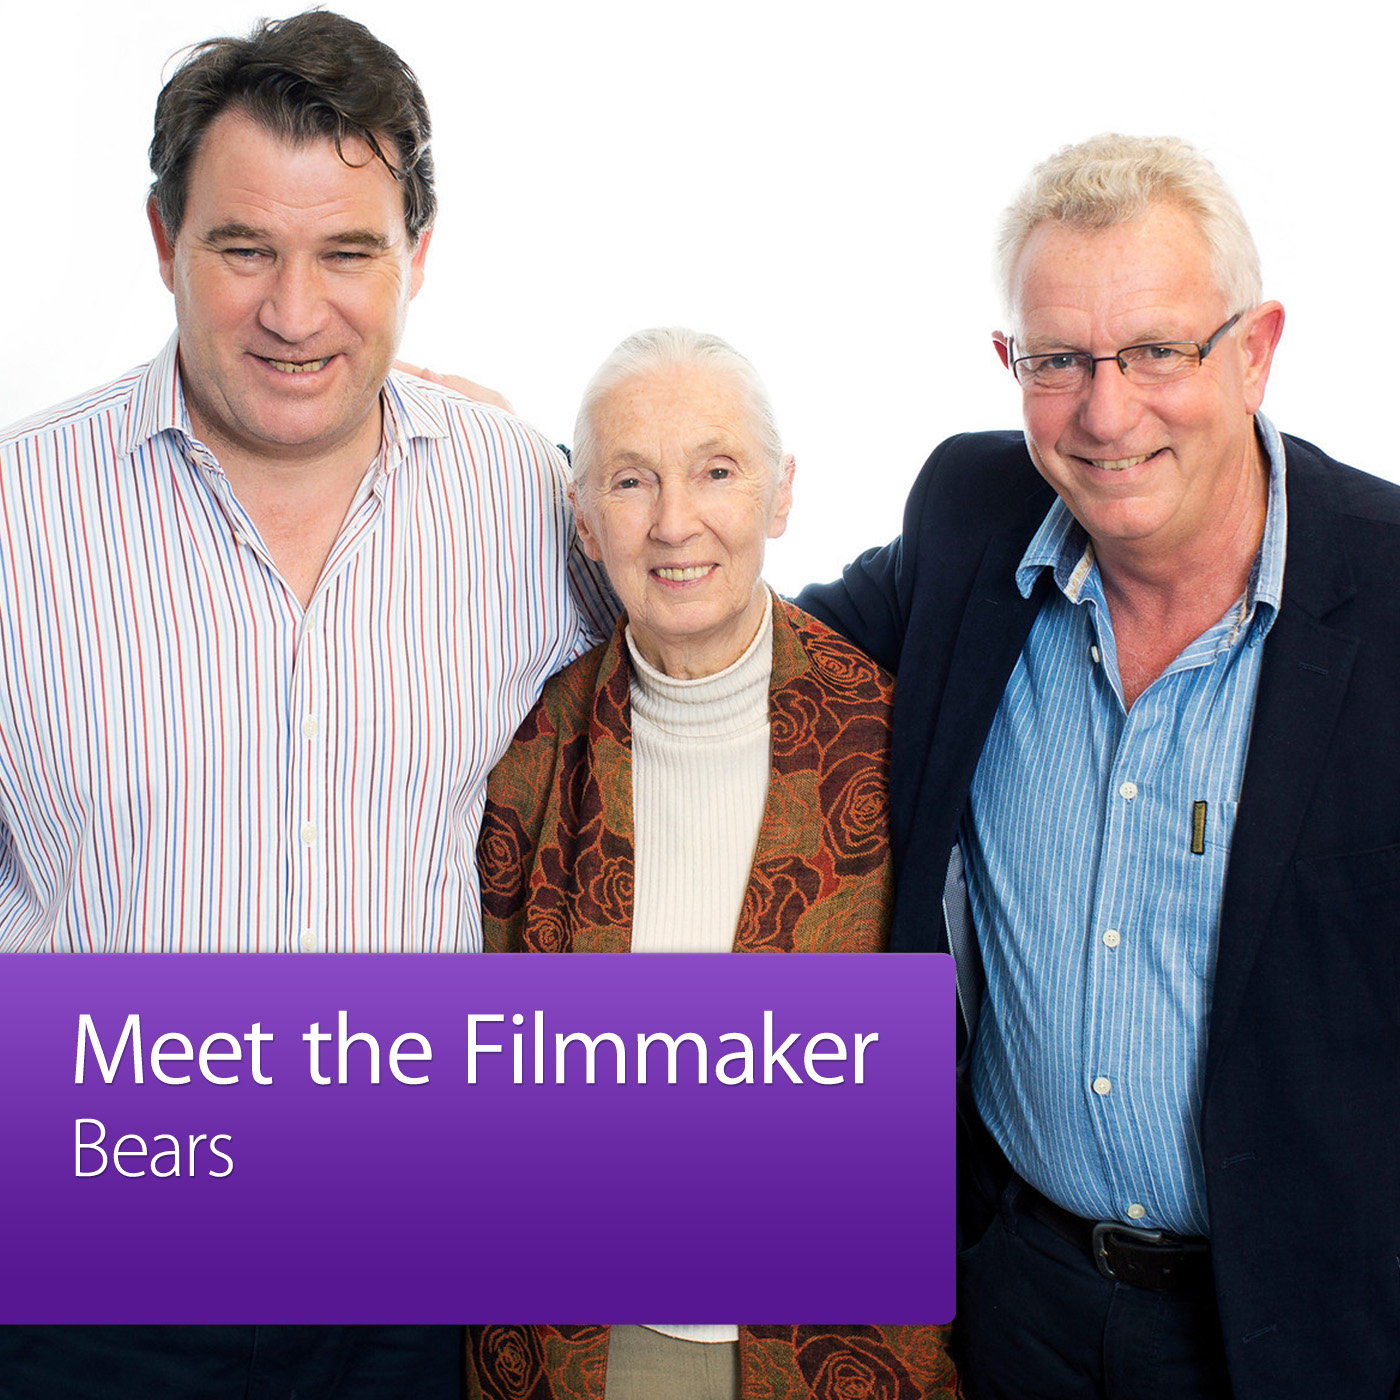 Dr. Jane Goodall, Alastair Fothergill, and Keith Scholey: Meet the Filmmaker